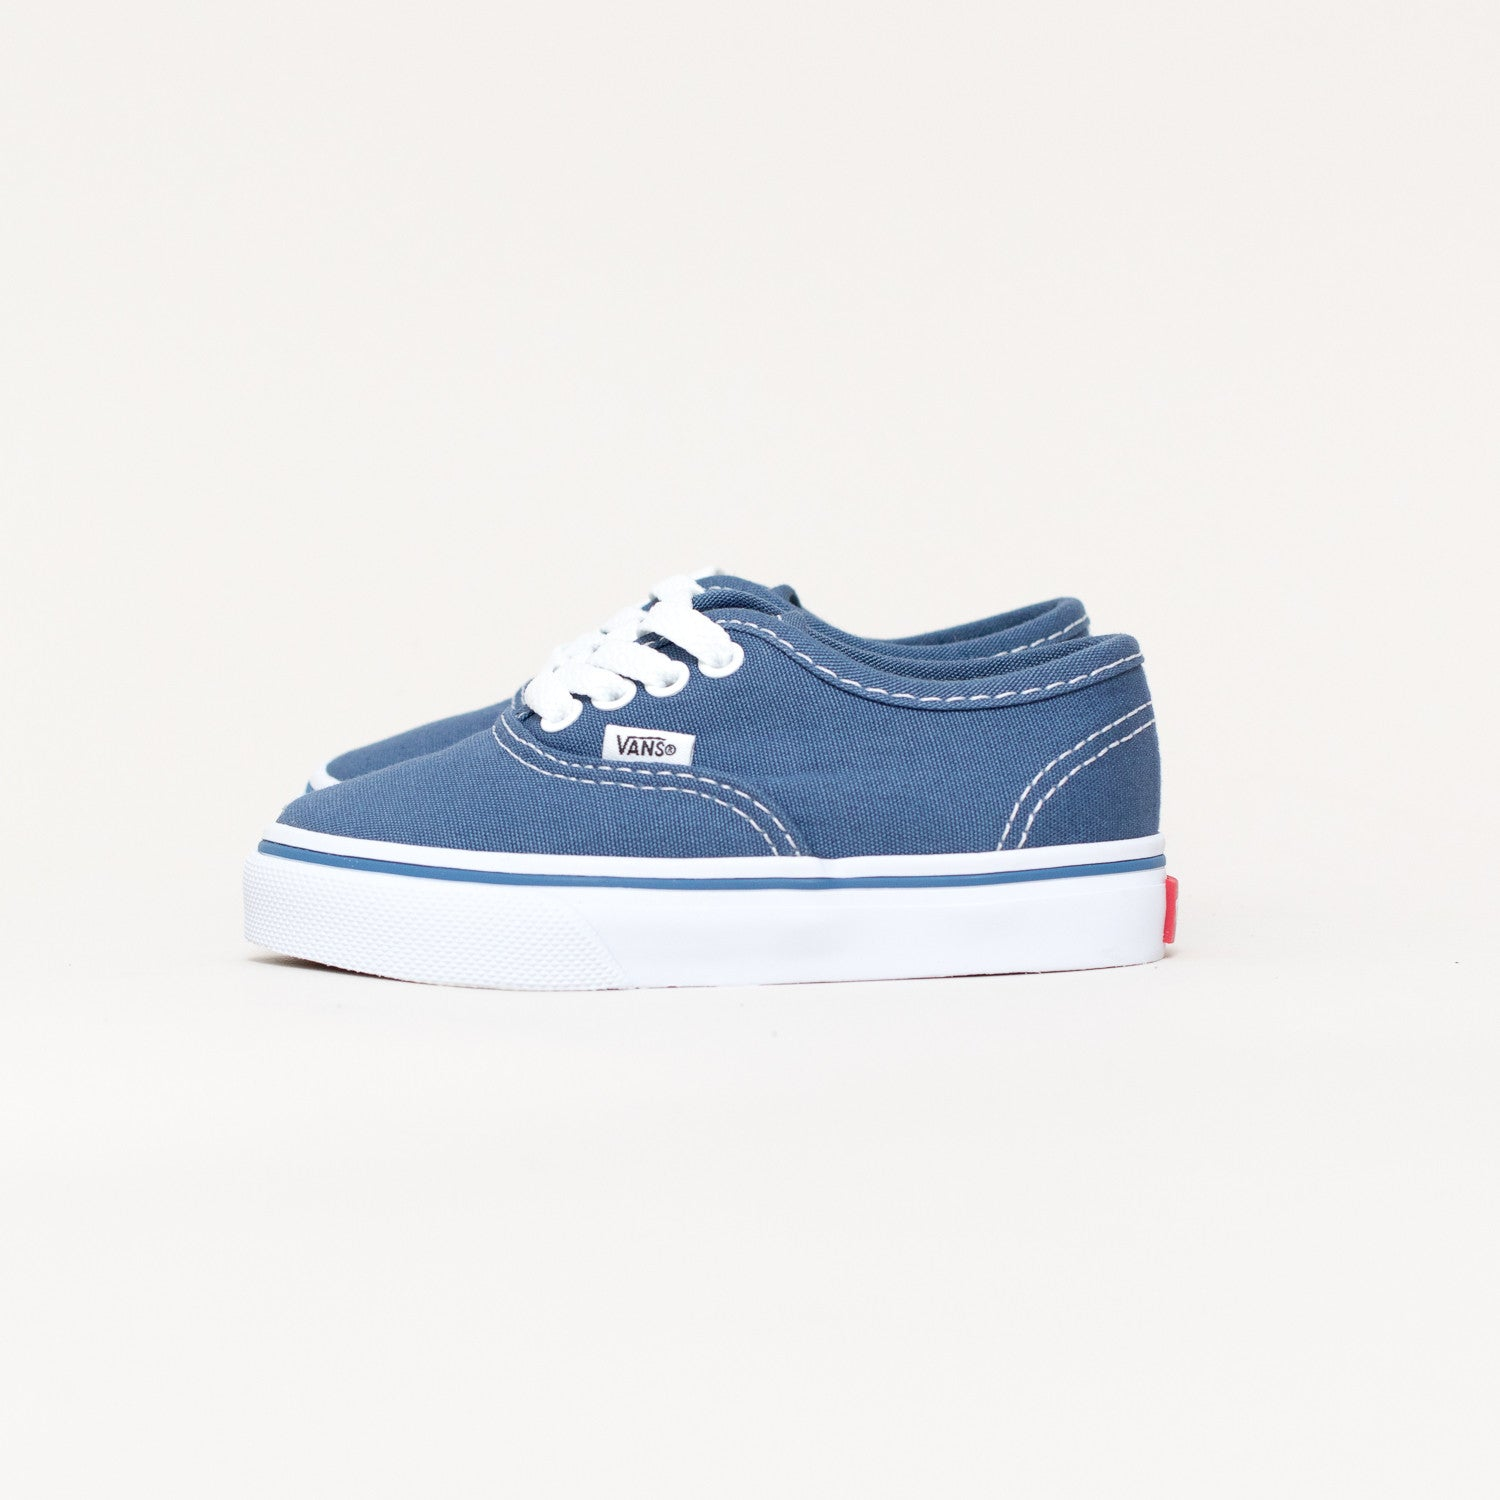 Toddler authentic - navy - KID - 1